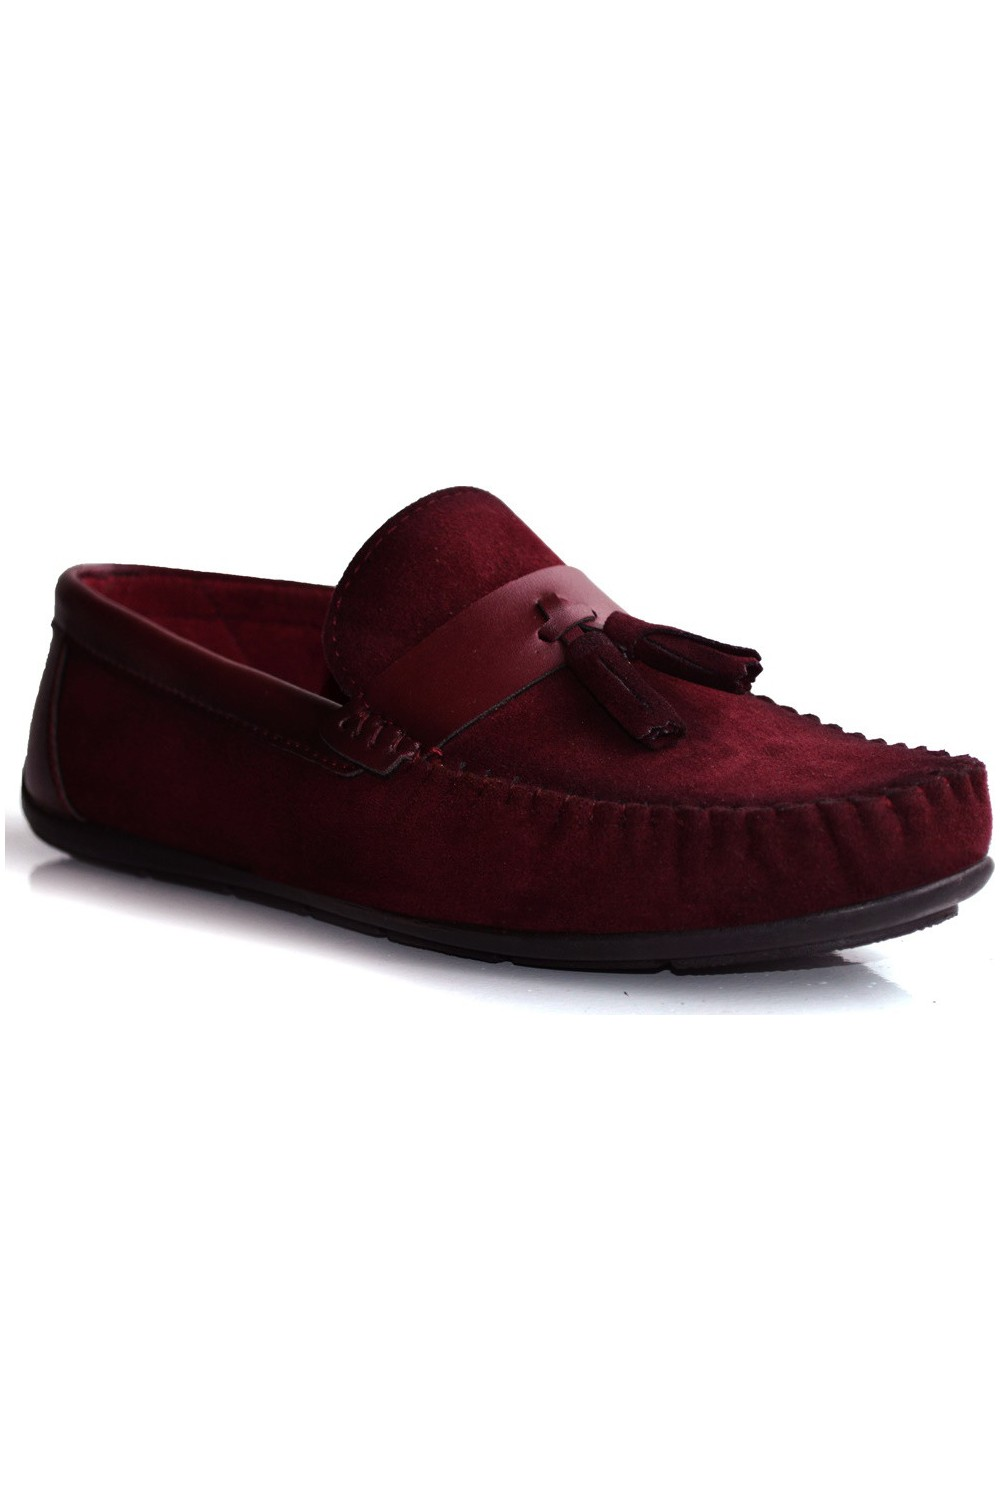 Rok Ferri Men's Loafers 917-005